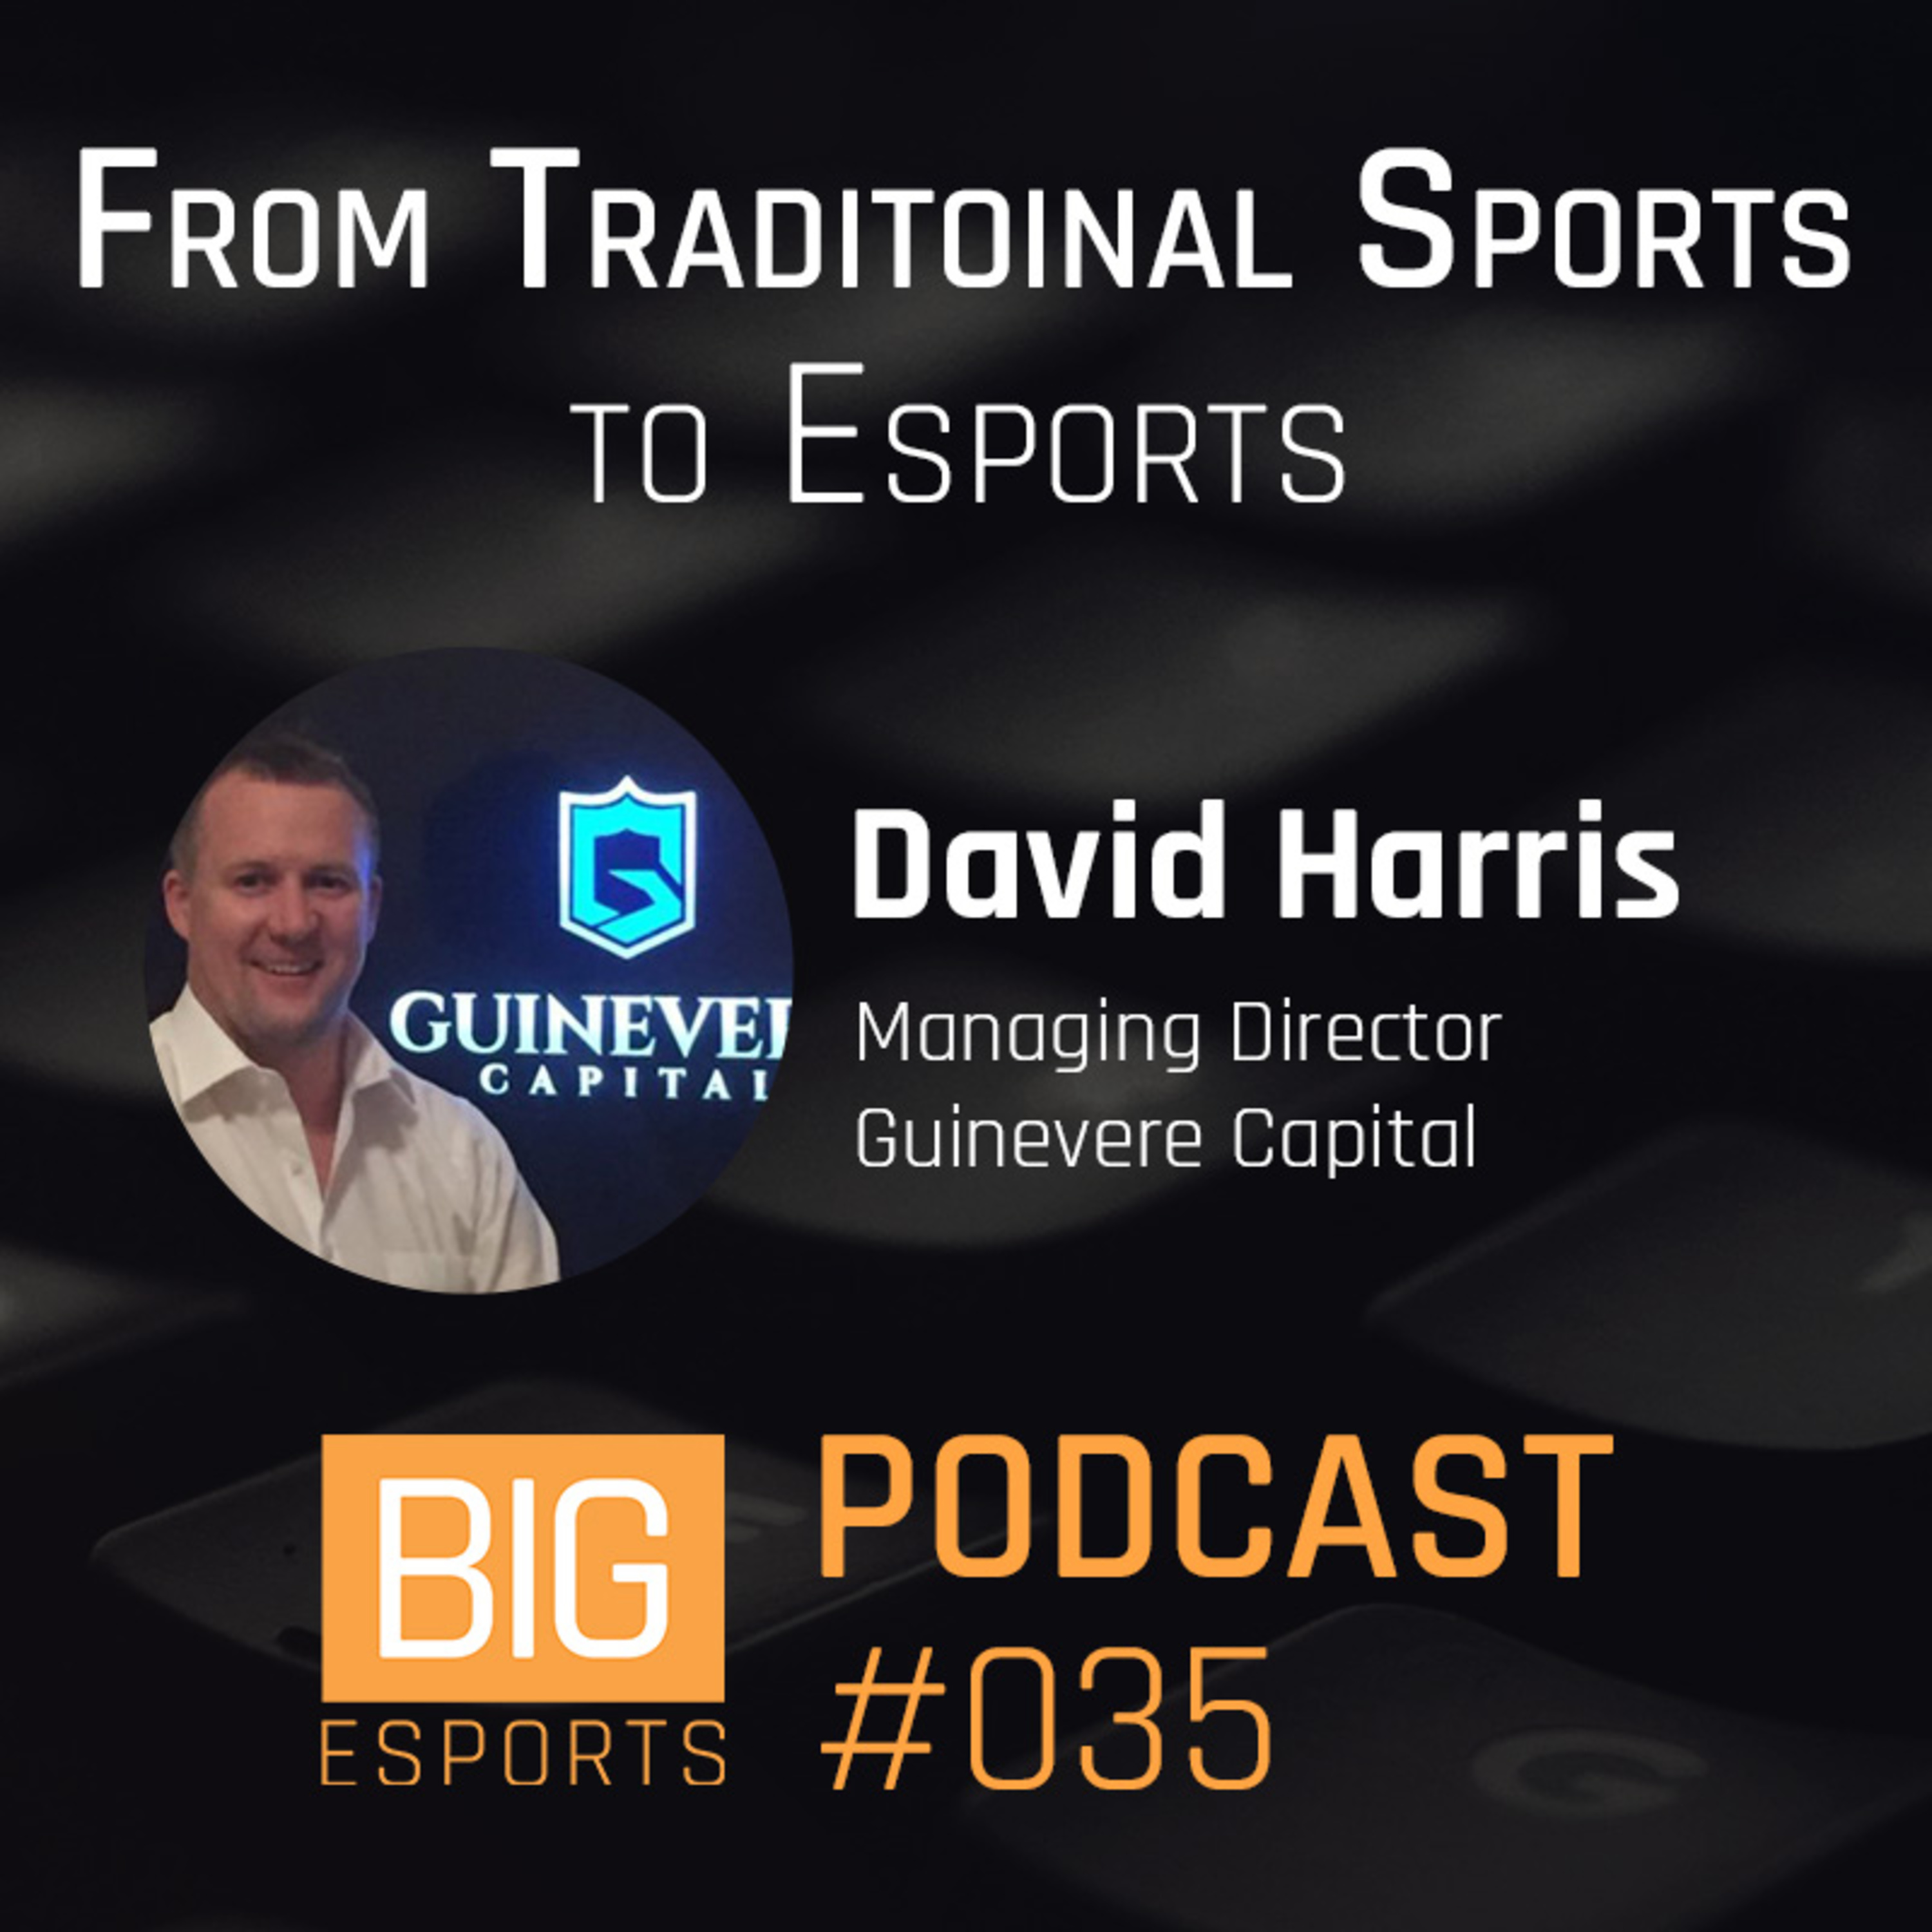 #035 - From Traditional Sports to Esports